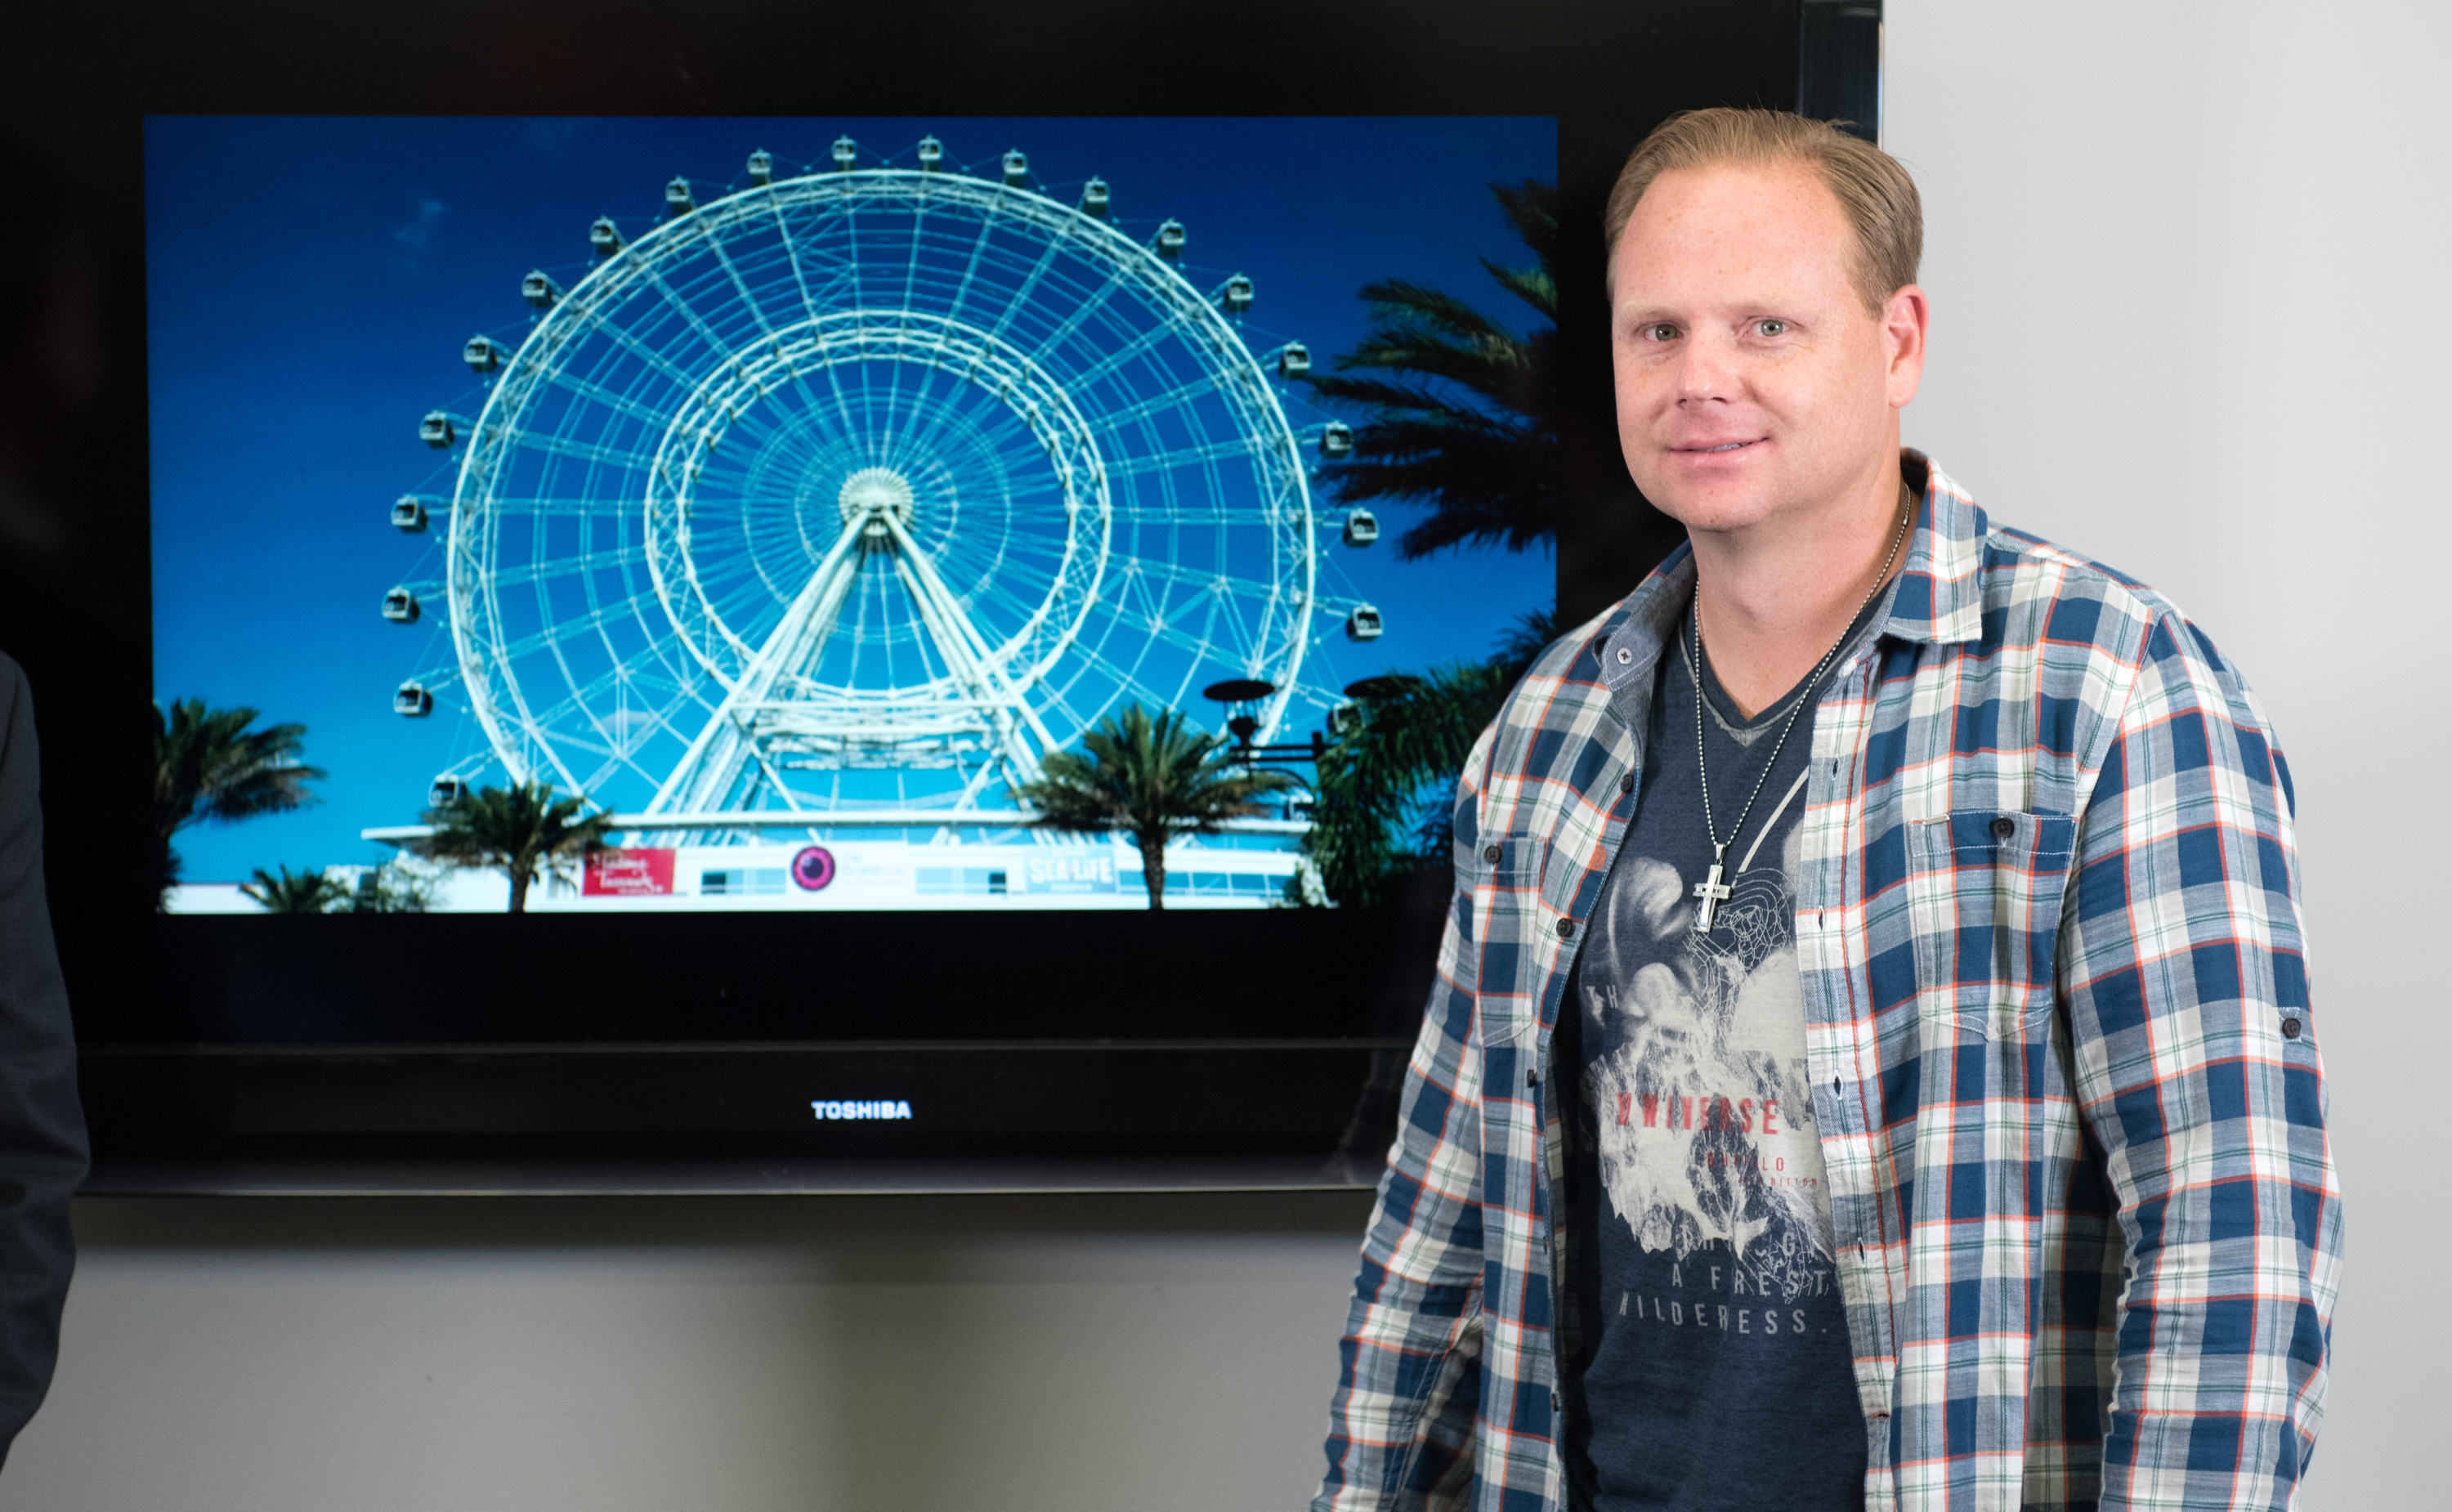 Nik Wallenda announces his plans to walk on top of the Orlando Eye Ferris wheel on April 13, 2015 in New York City.